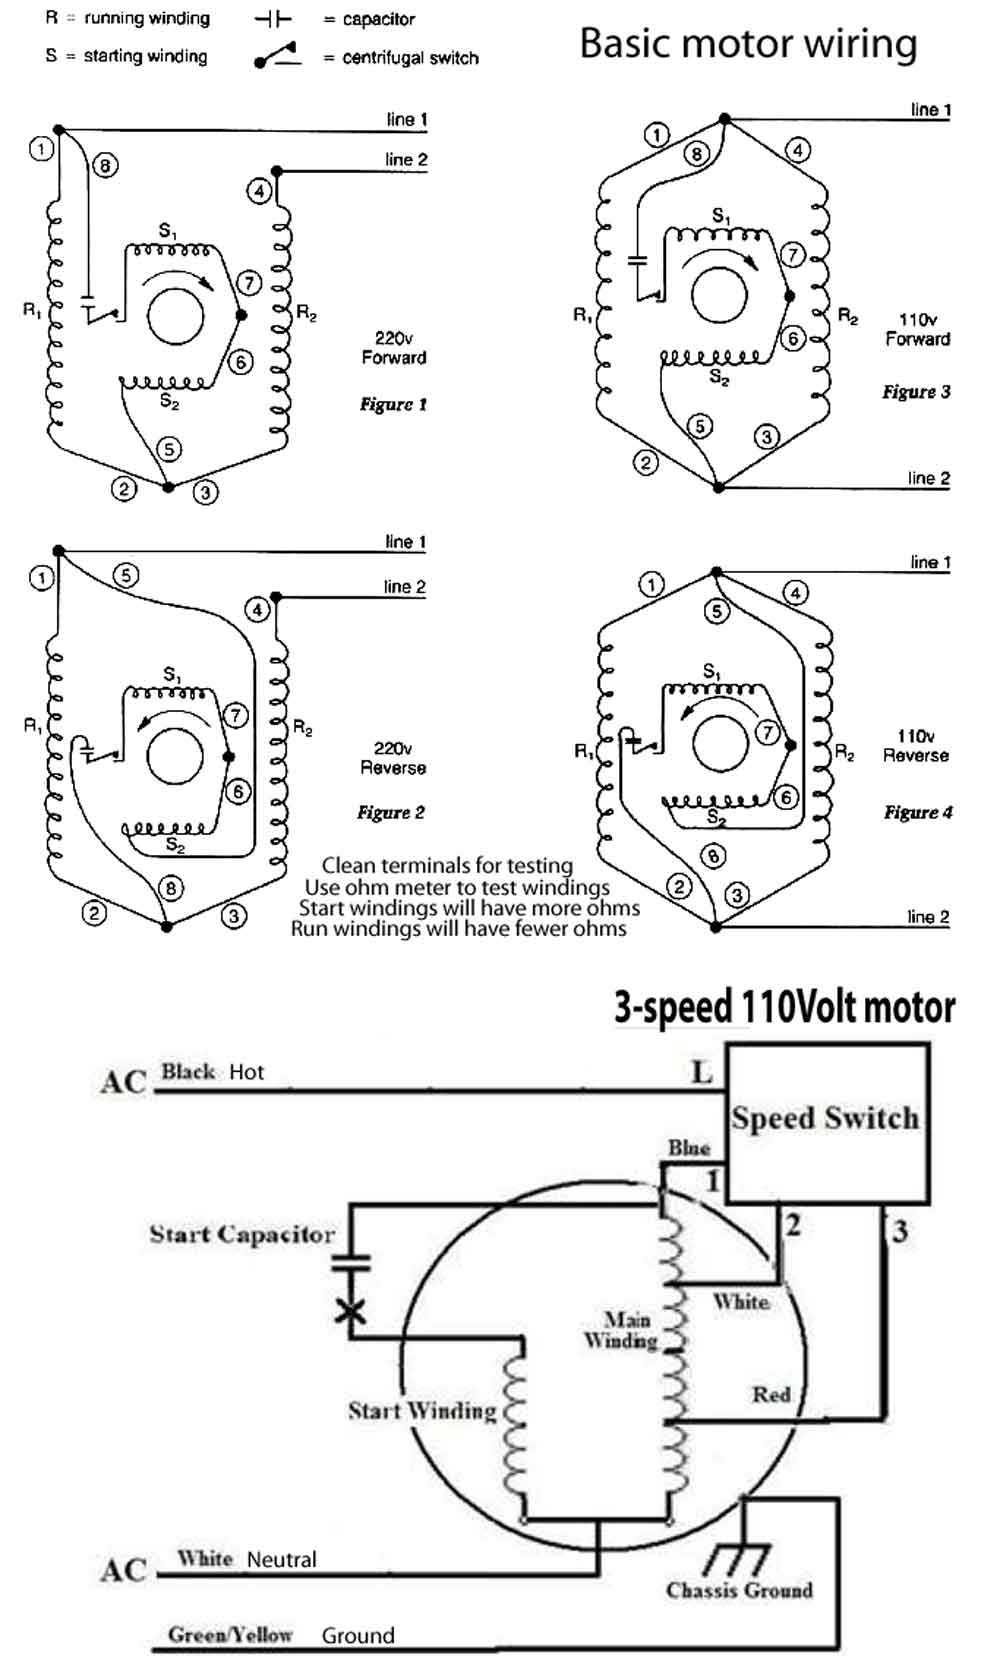 hight resolution of  heater for 120 volts motor wiring